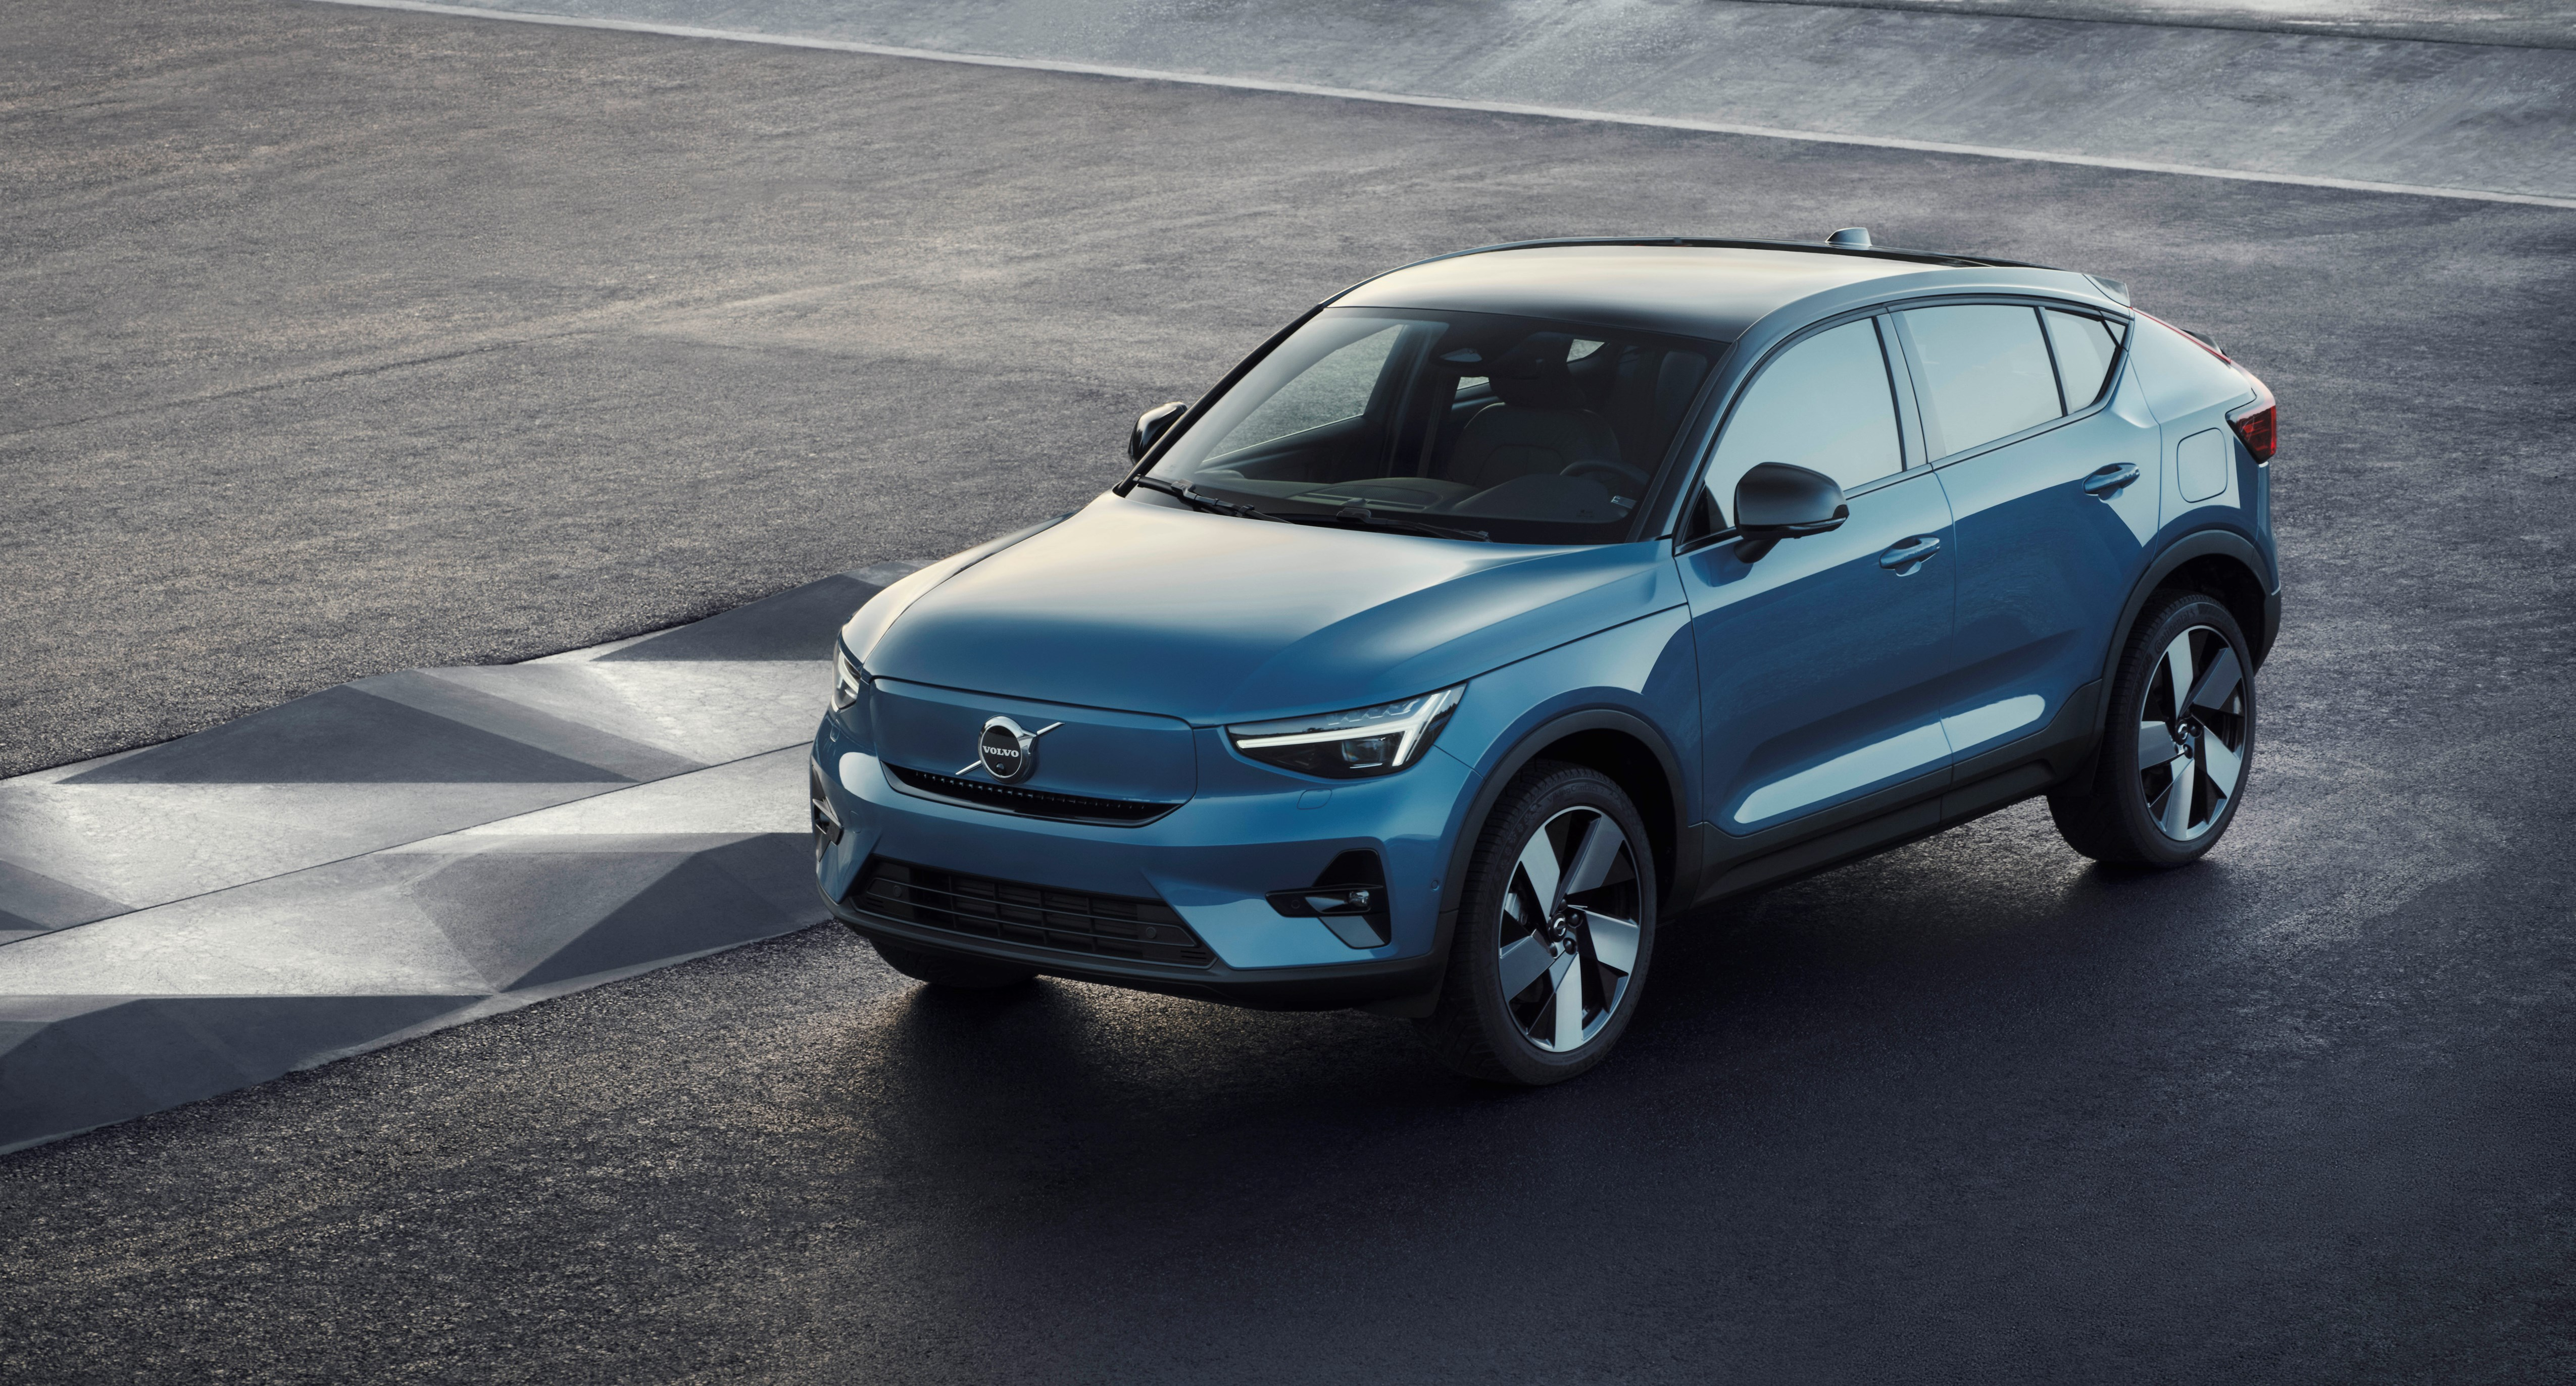 The 2022 C40 Recharge will be Volvo's first leather-free EV